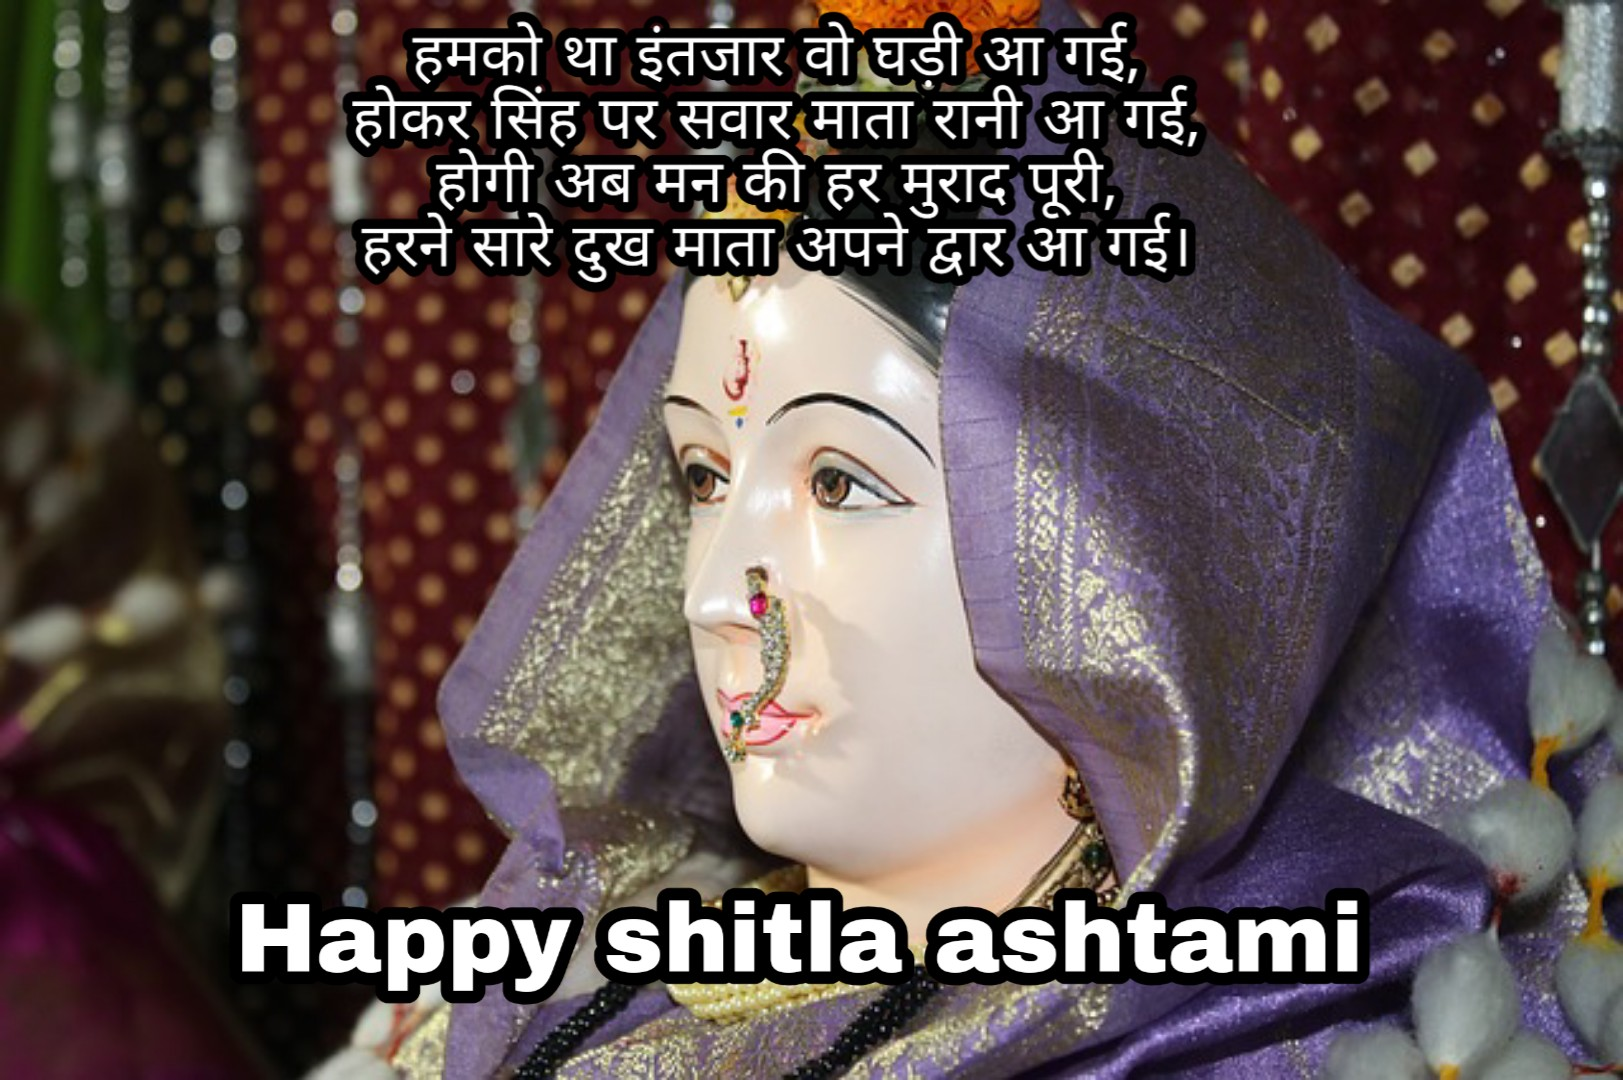 Photo of Shitla ashtami wishes 2020